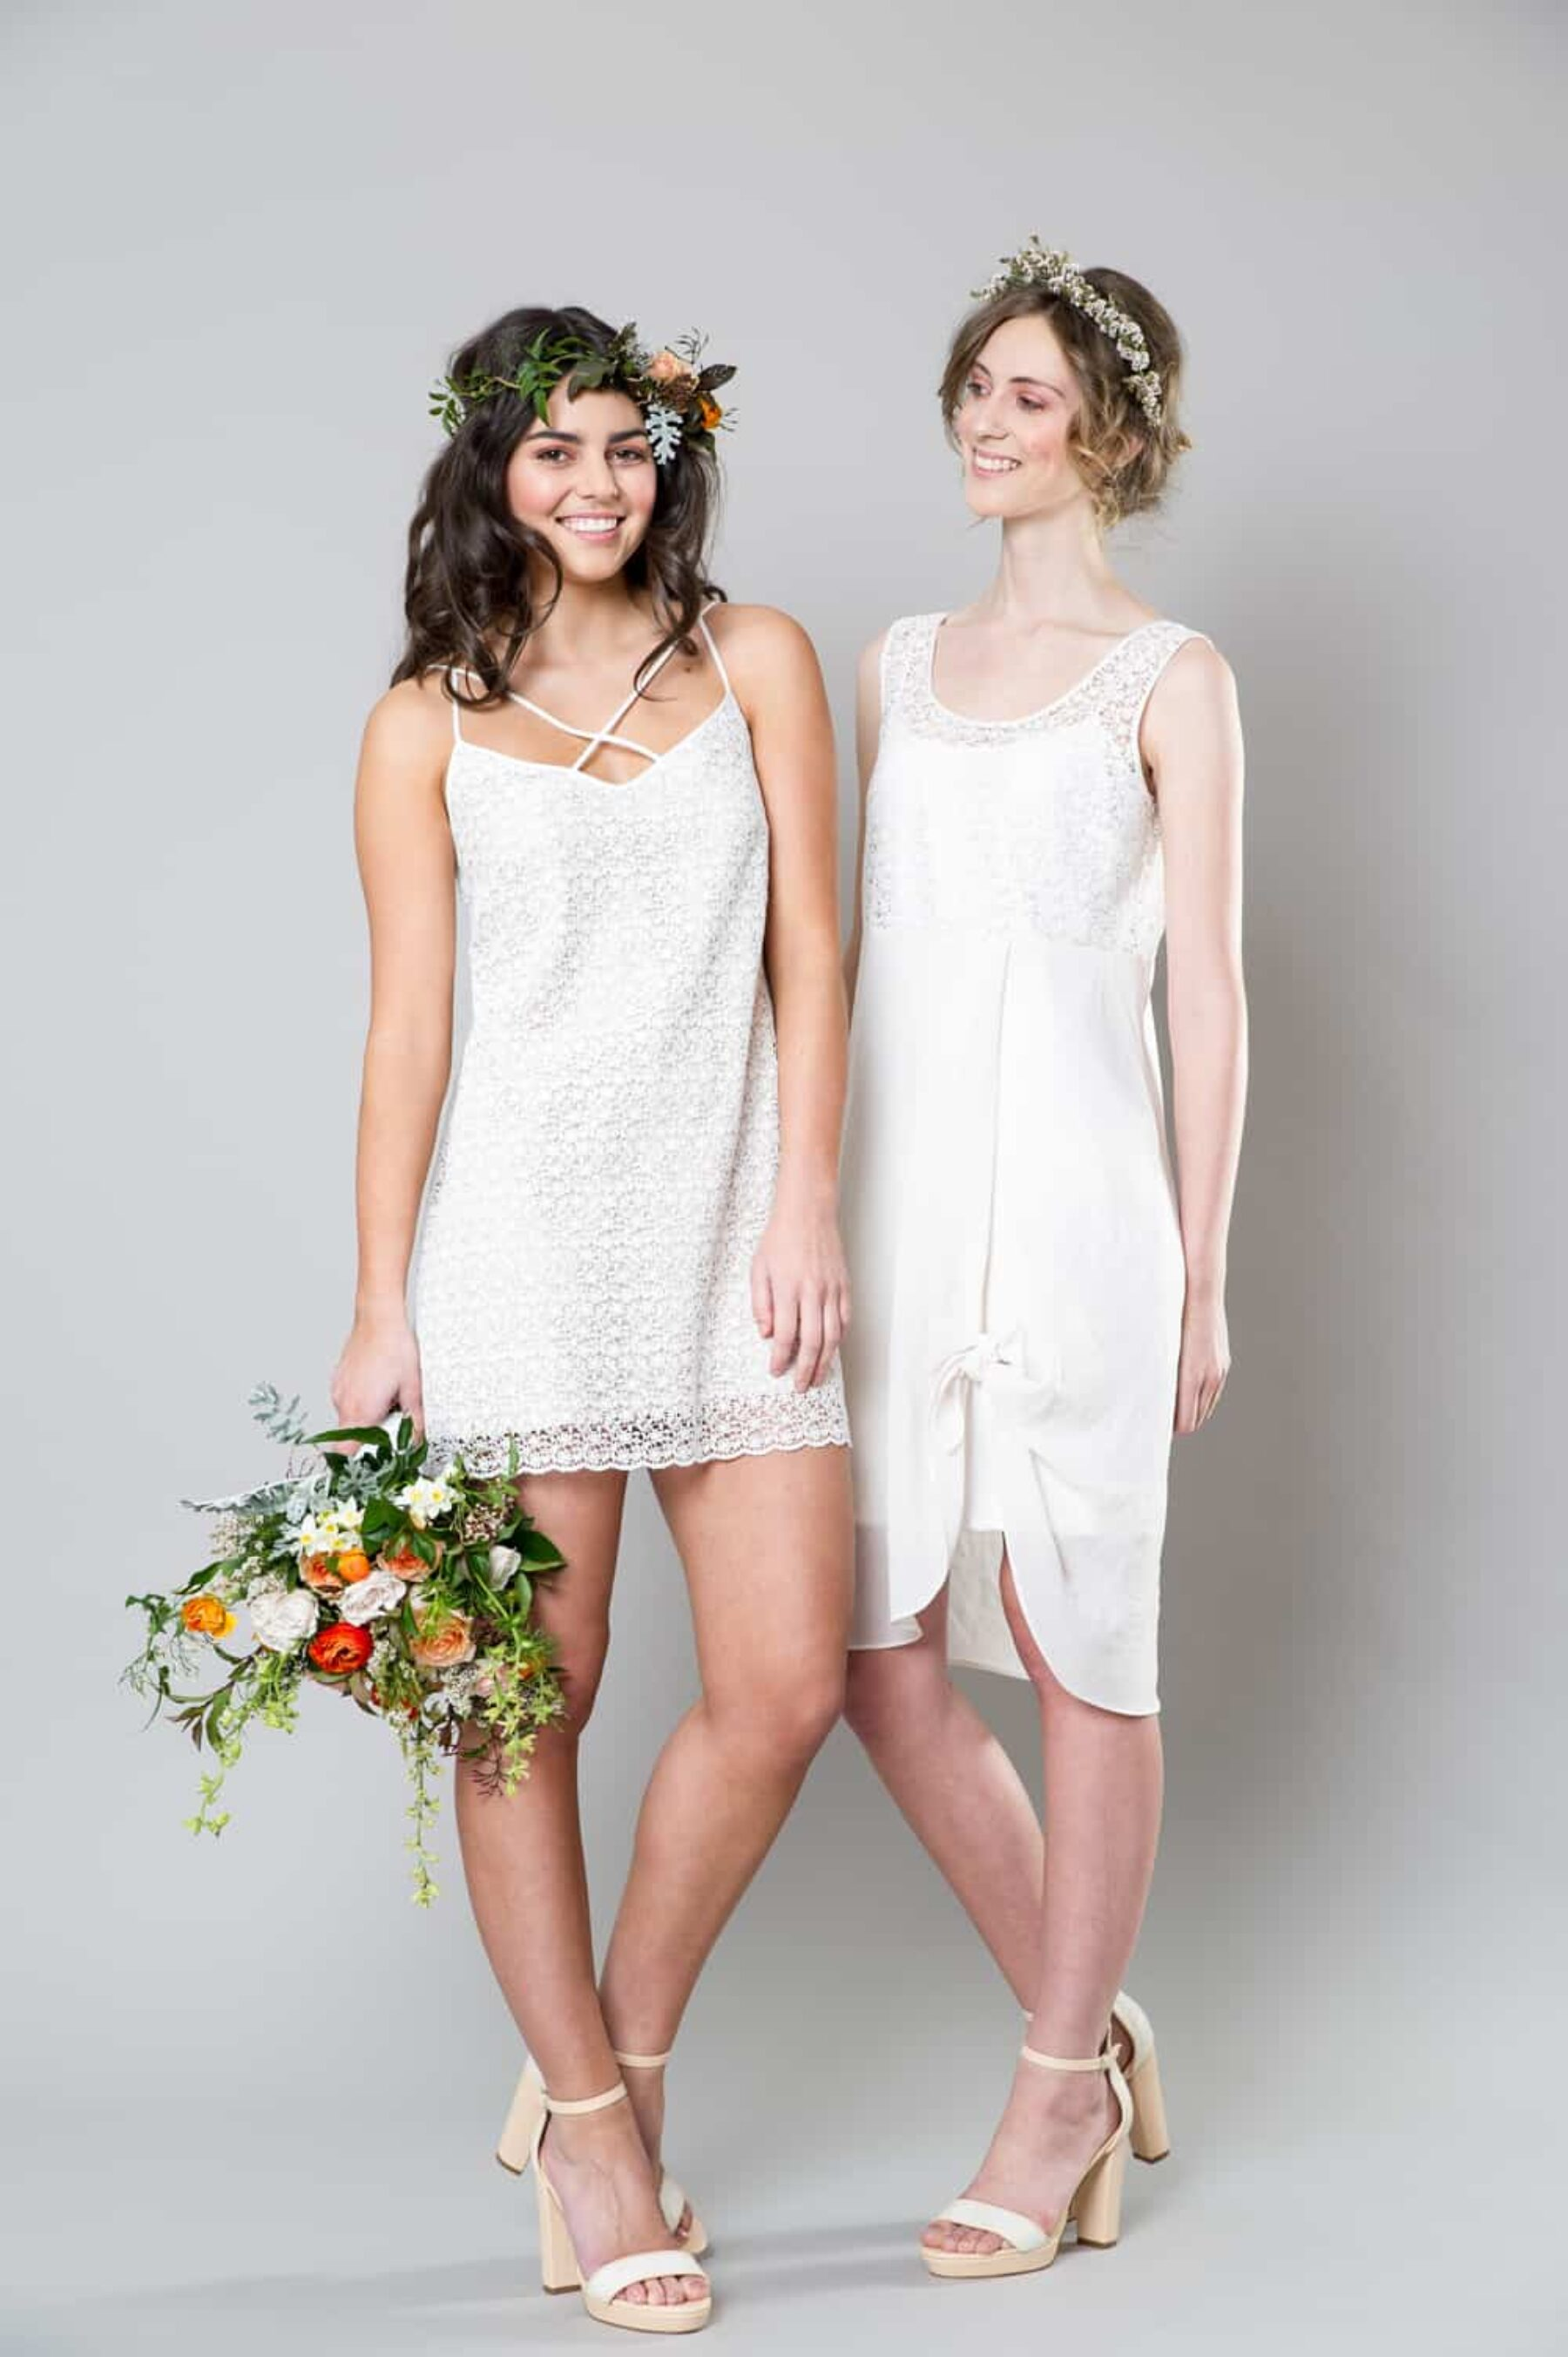 White bridesmaid dresses by Sally Eagle